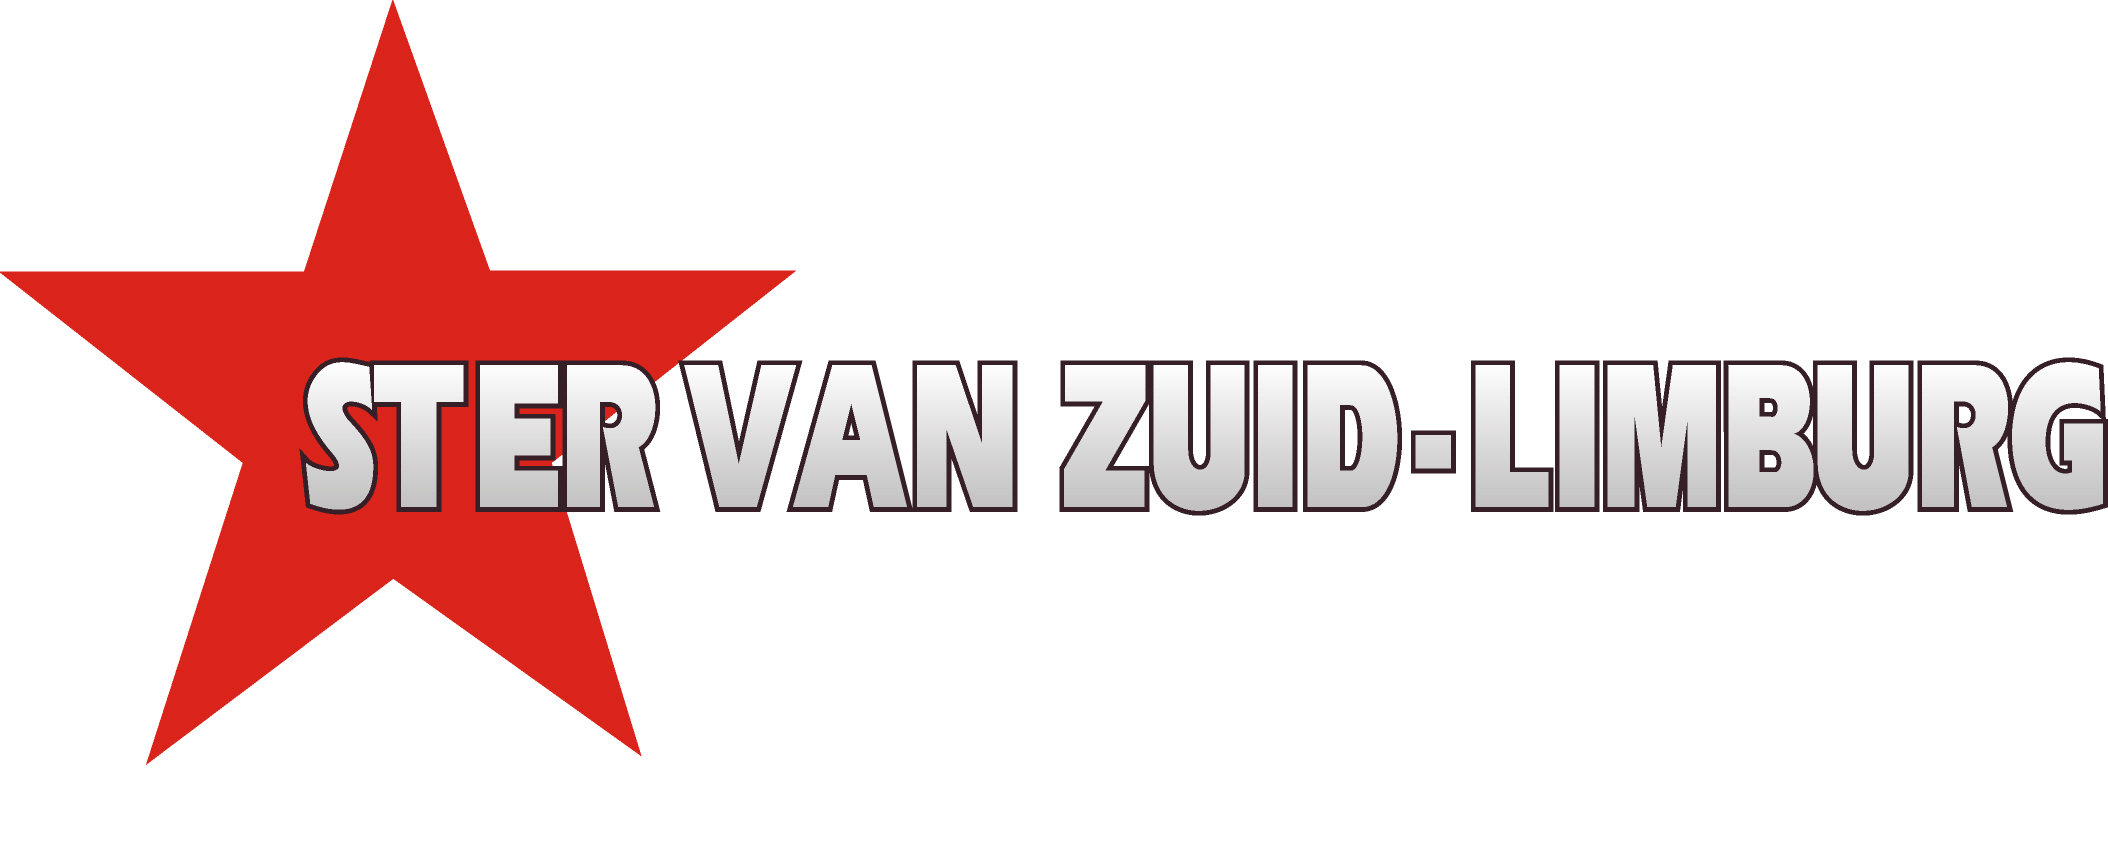 www.stervanzuidlimburg.be